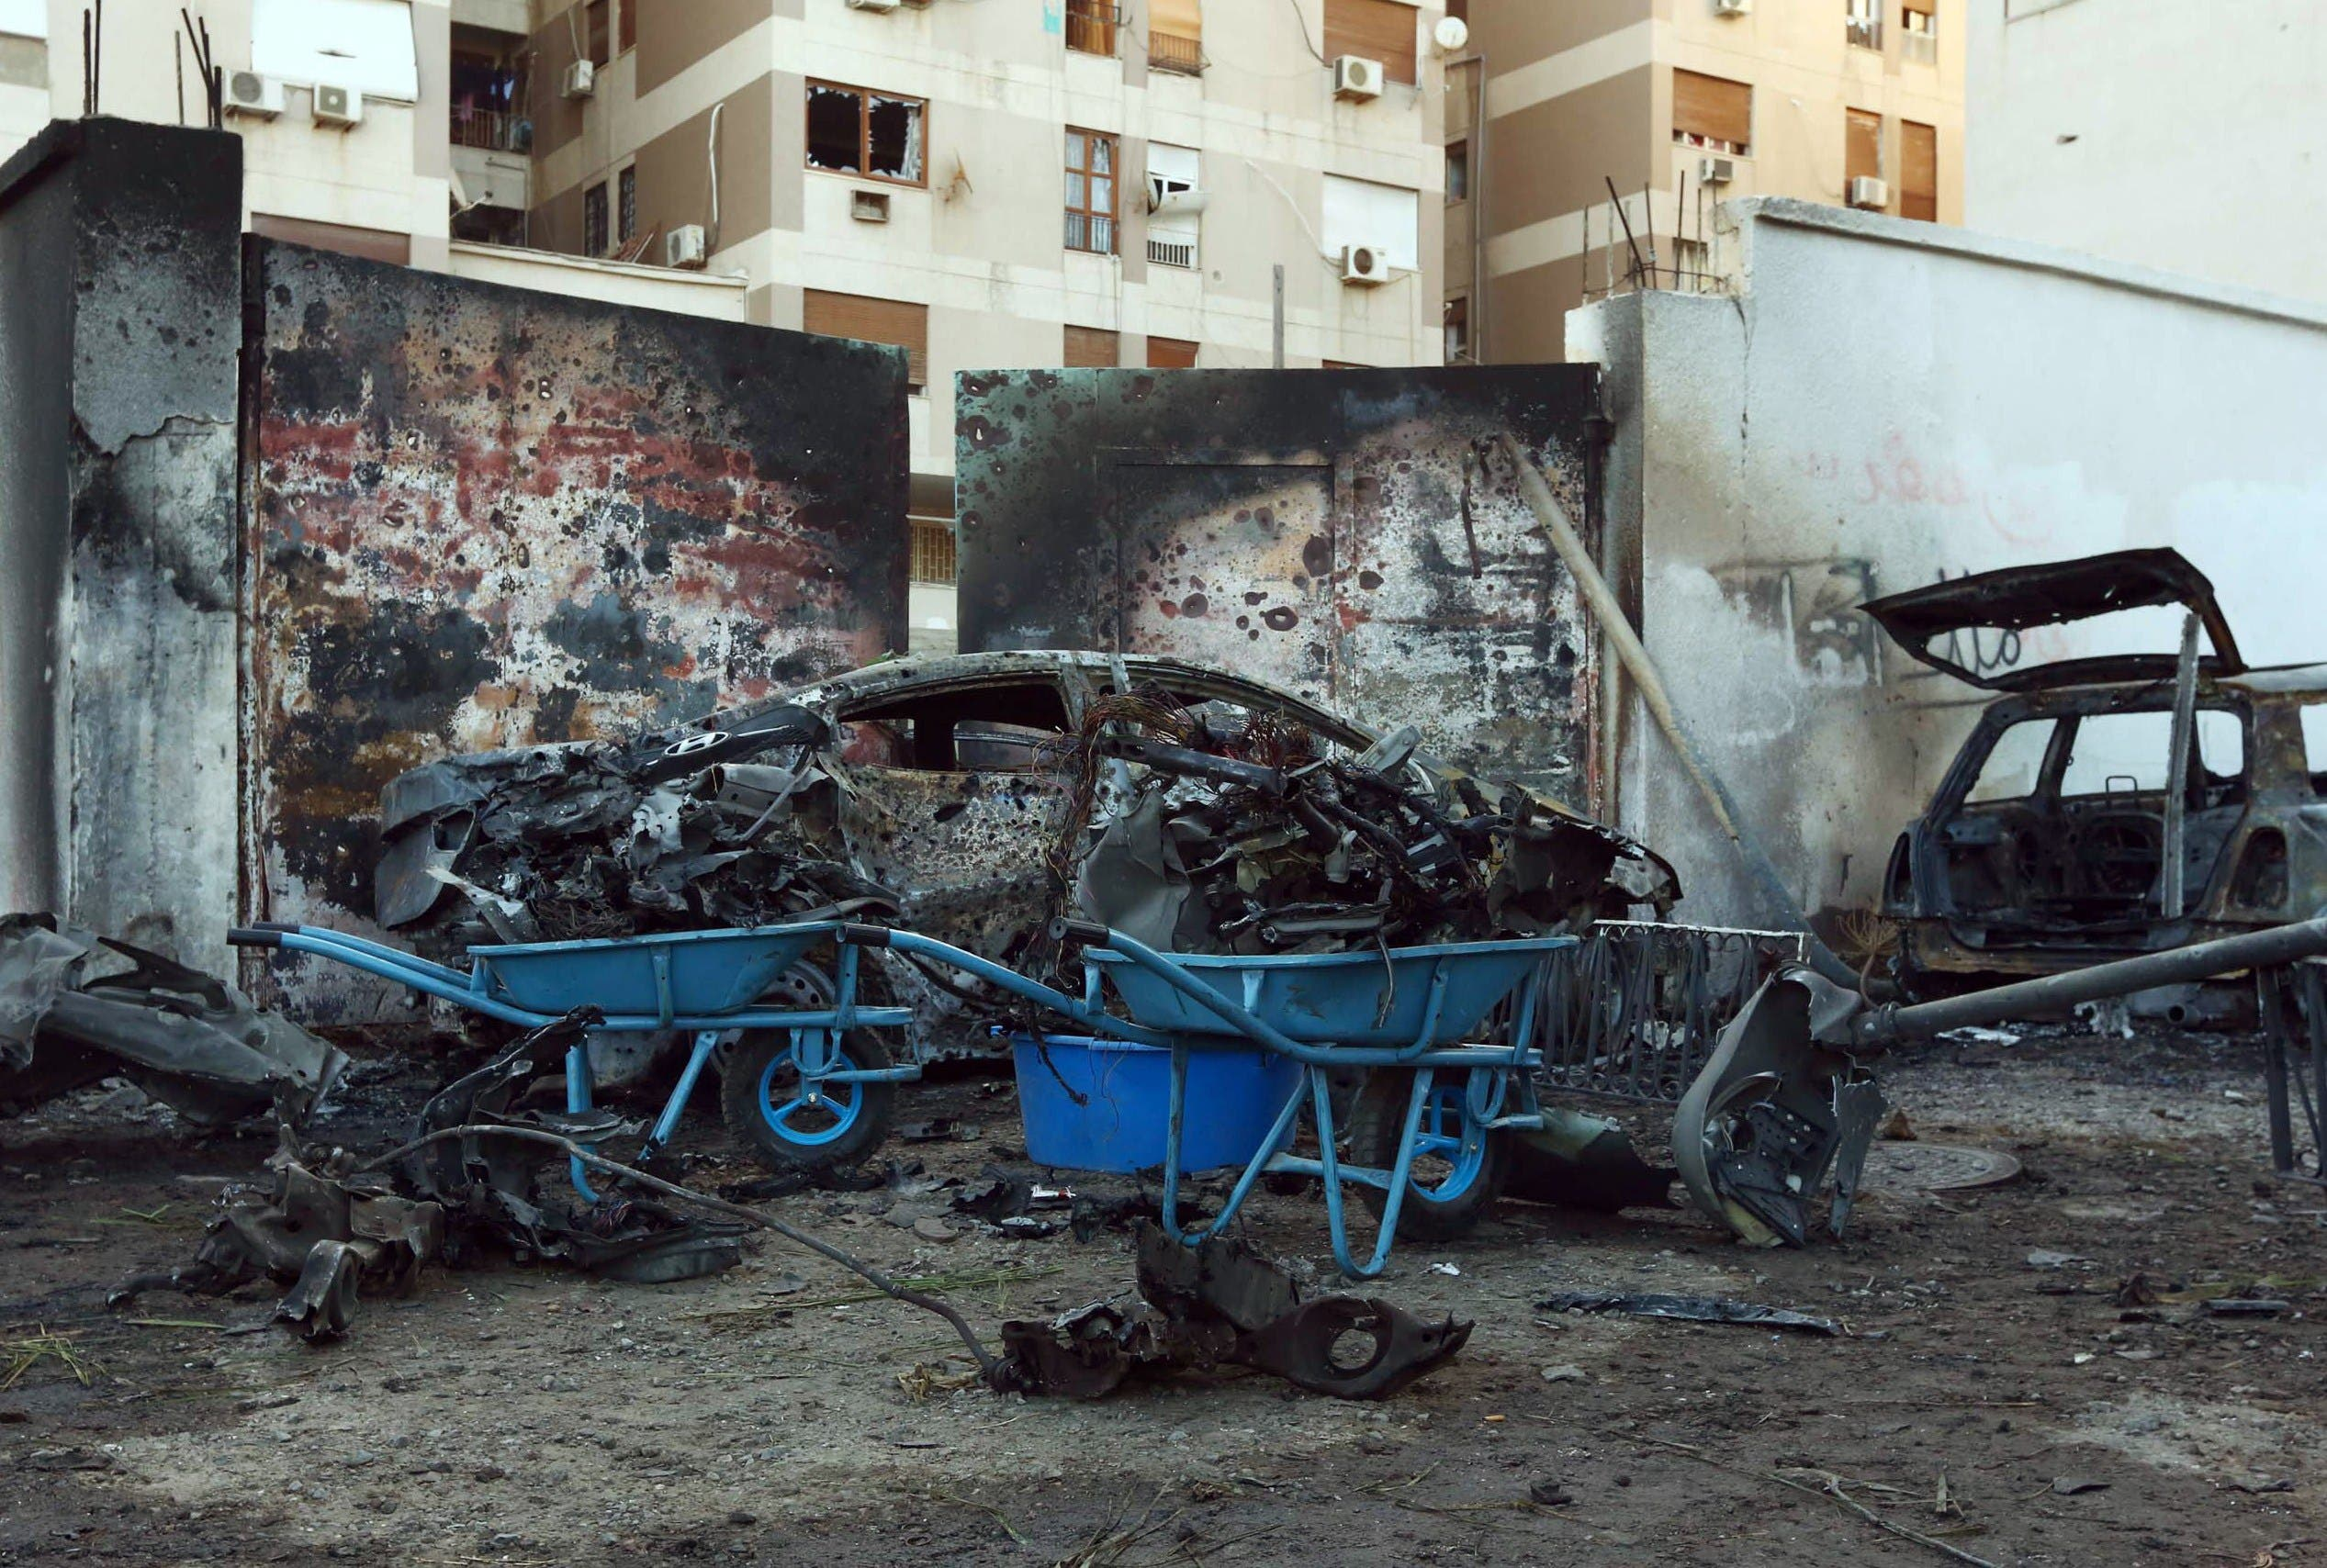 A destroyed vehicle is seen near the compound of the Egyptian embassy in the Libyan capital Tripoli on November 13, 2014 after it was targeted by a car bomb explosion. AFP